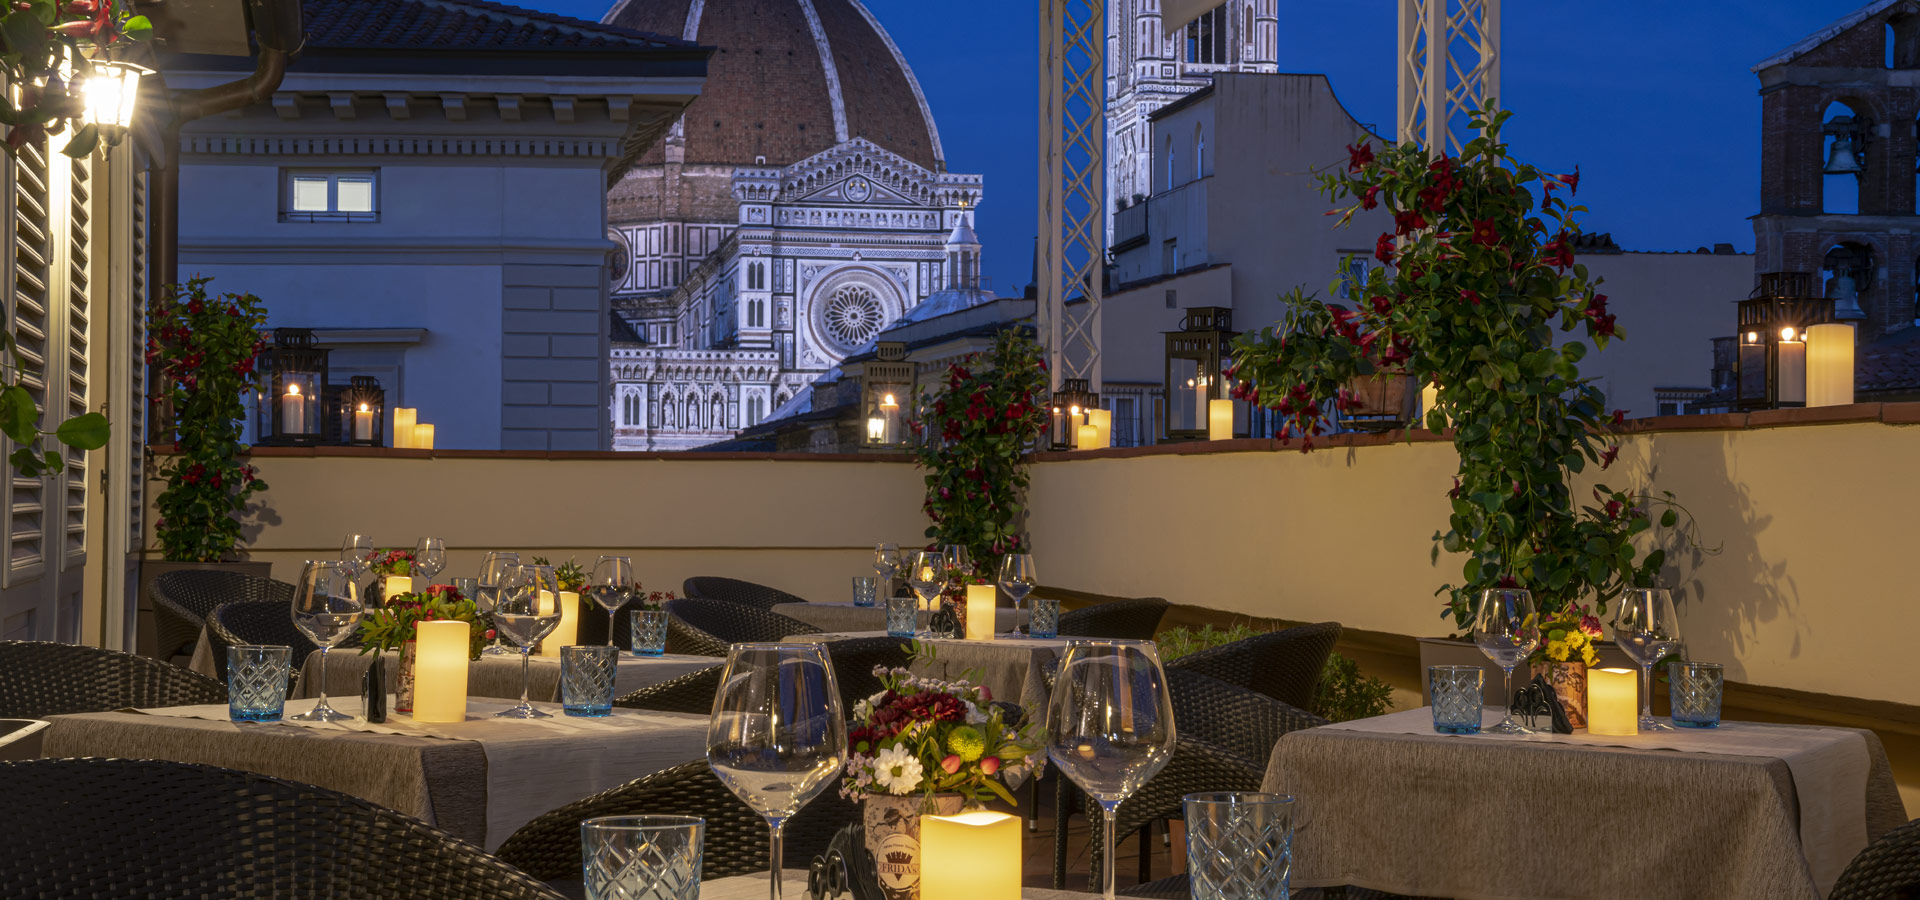 4 Star Hotel In Centre Of Florence Hotel Laurus Al Duomo